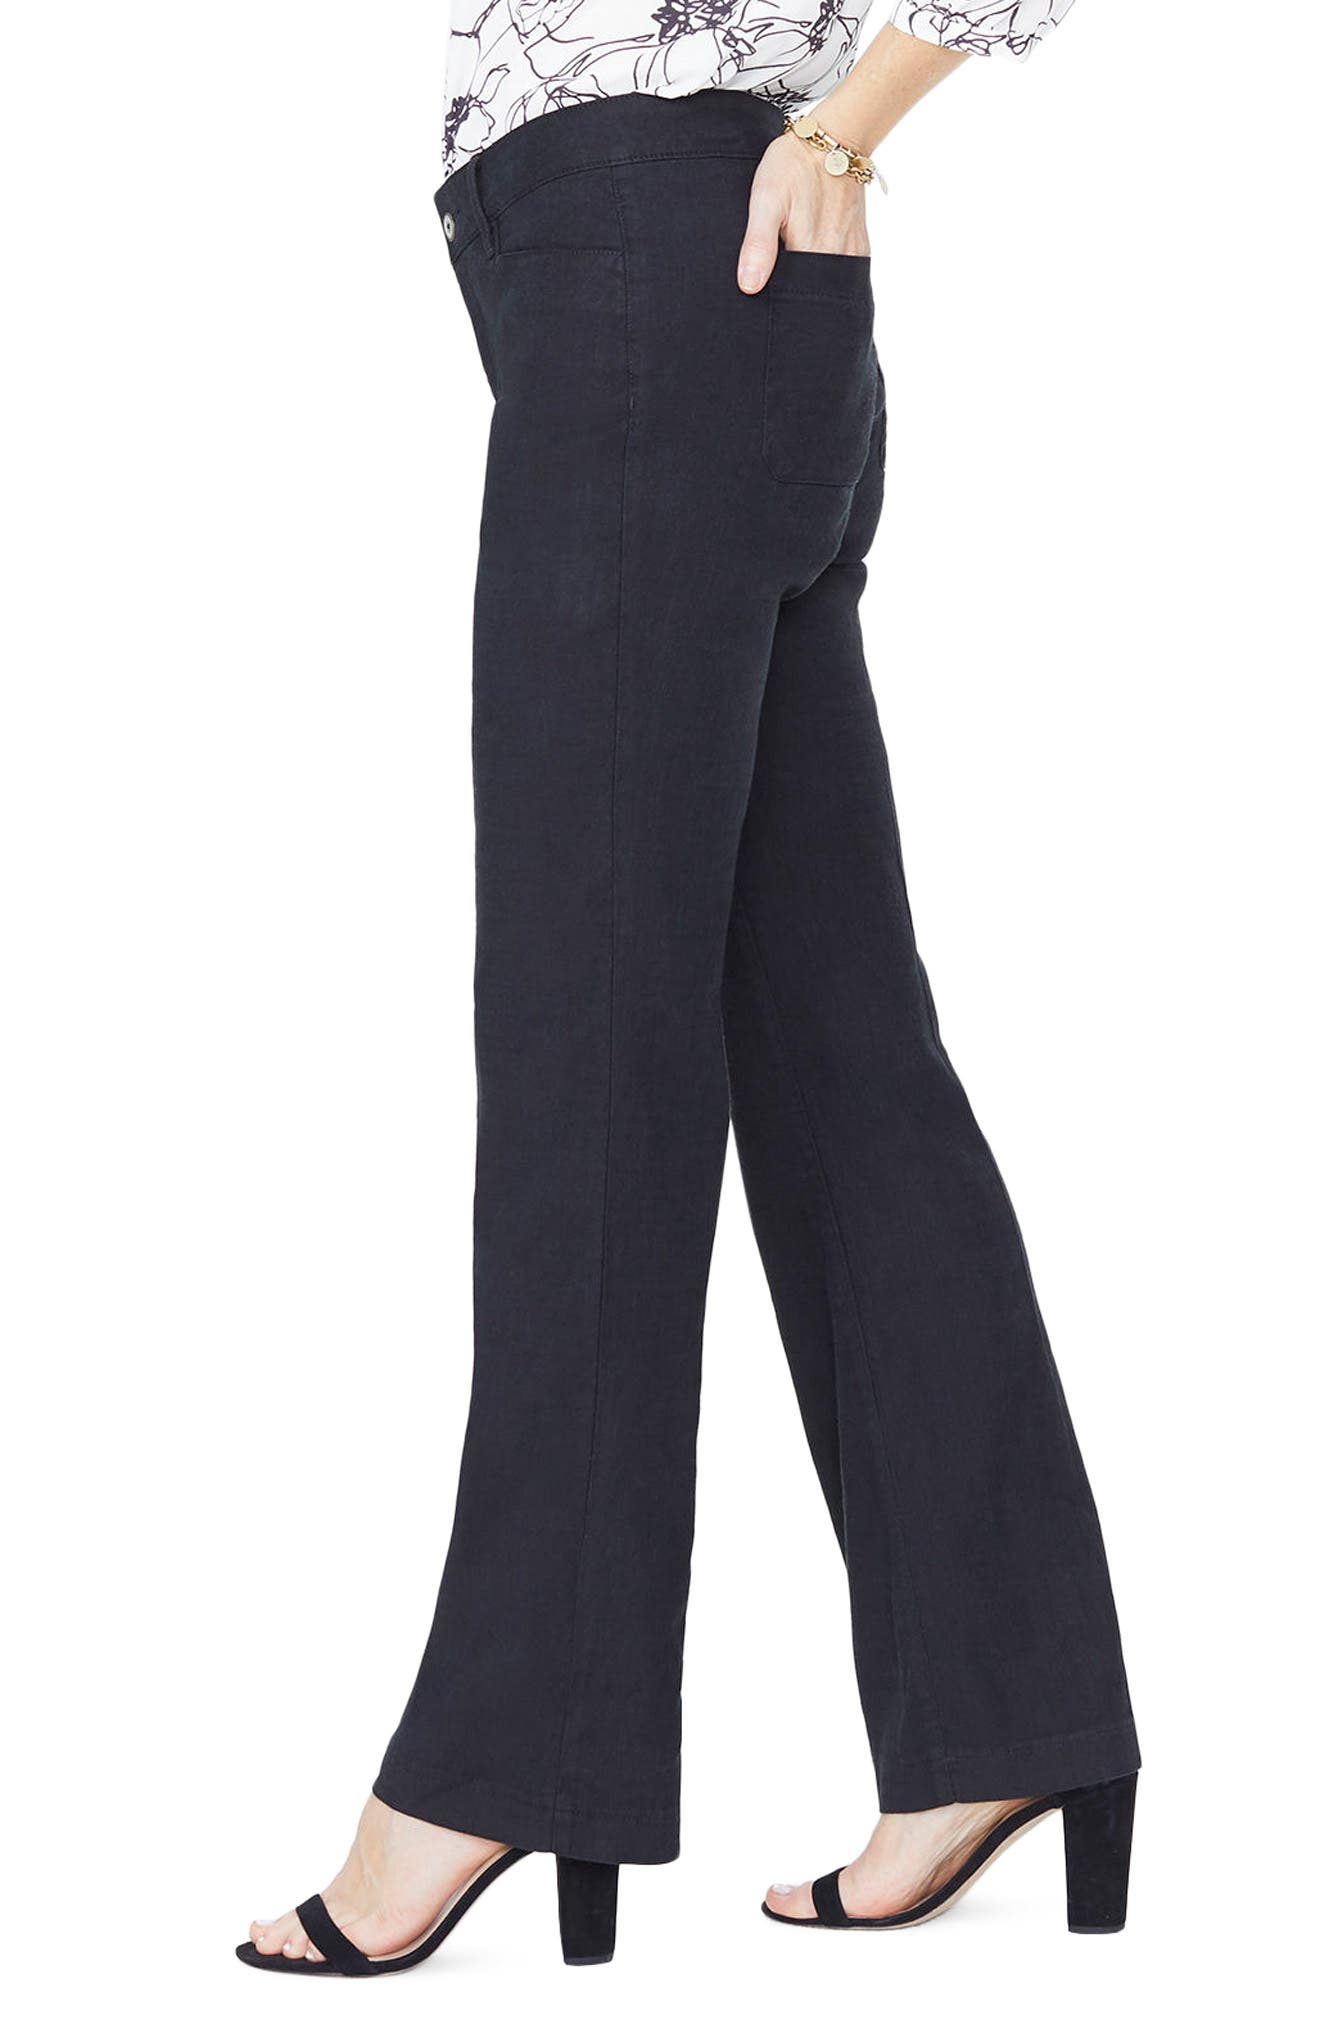 Linen Trousers,                             Alternate thumbnail 3, color,                             001